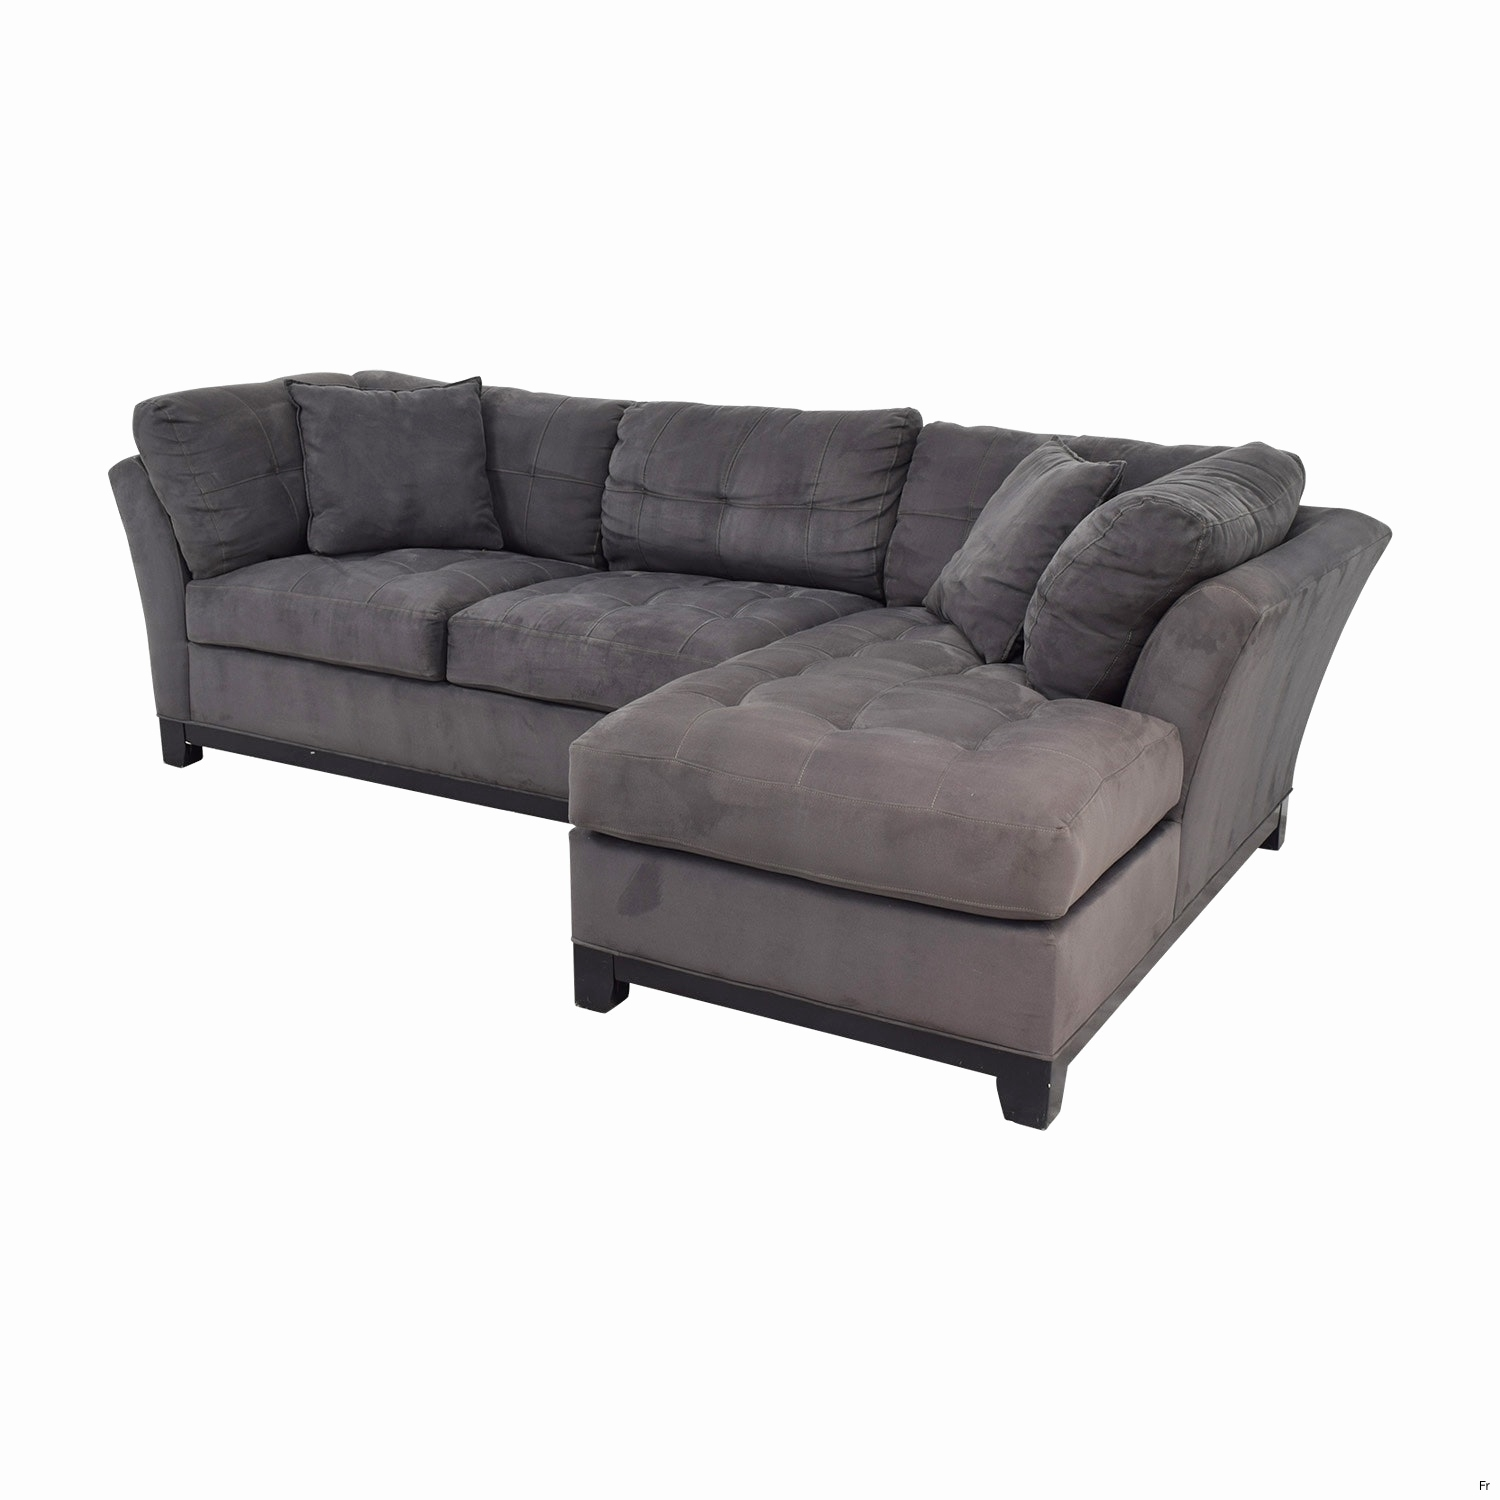 Awesome 7 Seat Sectional Sofa Pictures – Home Design In Raymour And Flanigan Sectional Sofas (Image 3 of 10)